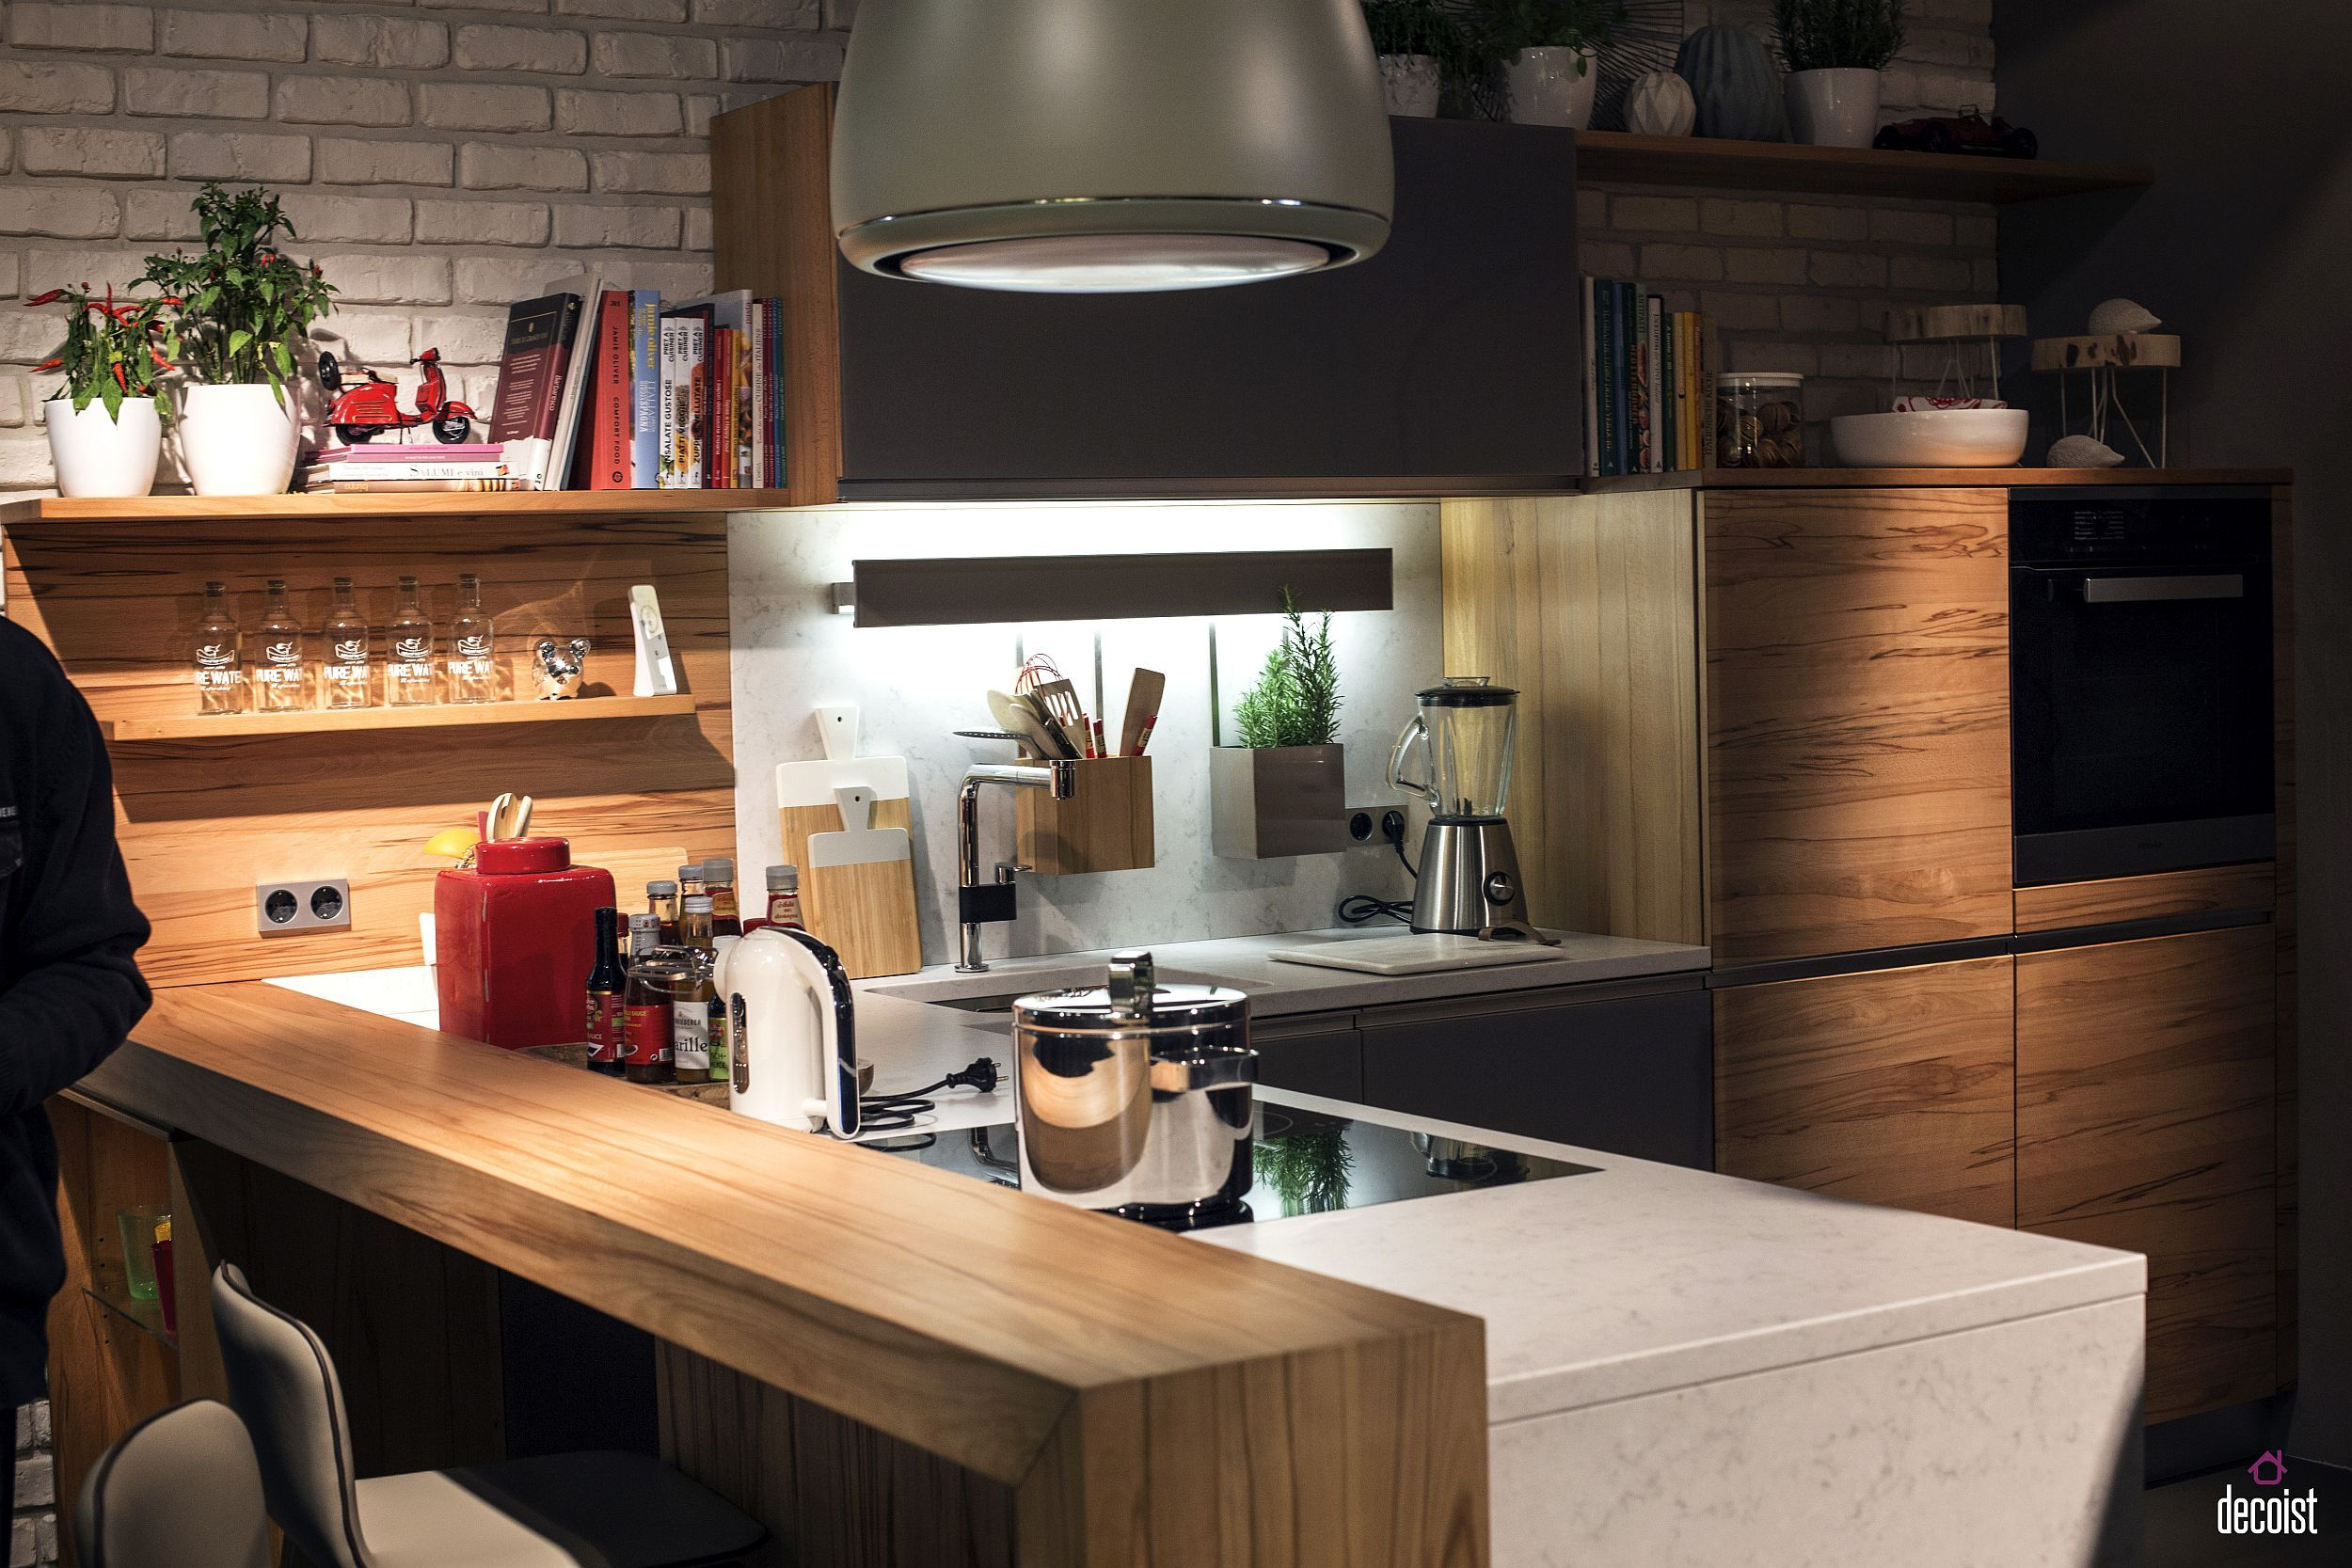 Wooden Breakfast Bar Seems Like A Visual Extension Of The Kitchen Shelves And The Worktop Freestanding Kitchen Island Breakfast Bar Kitchen Kitchen Bar